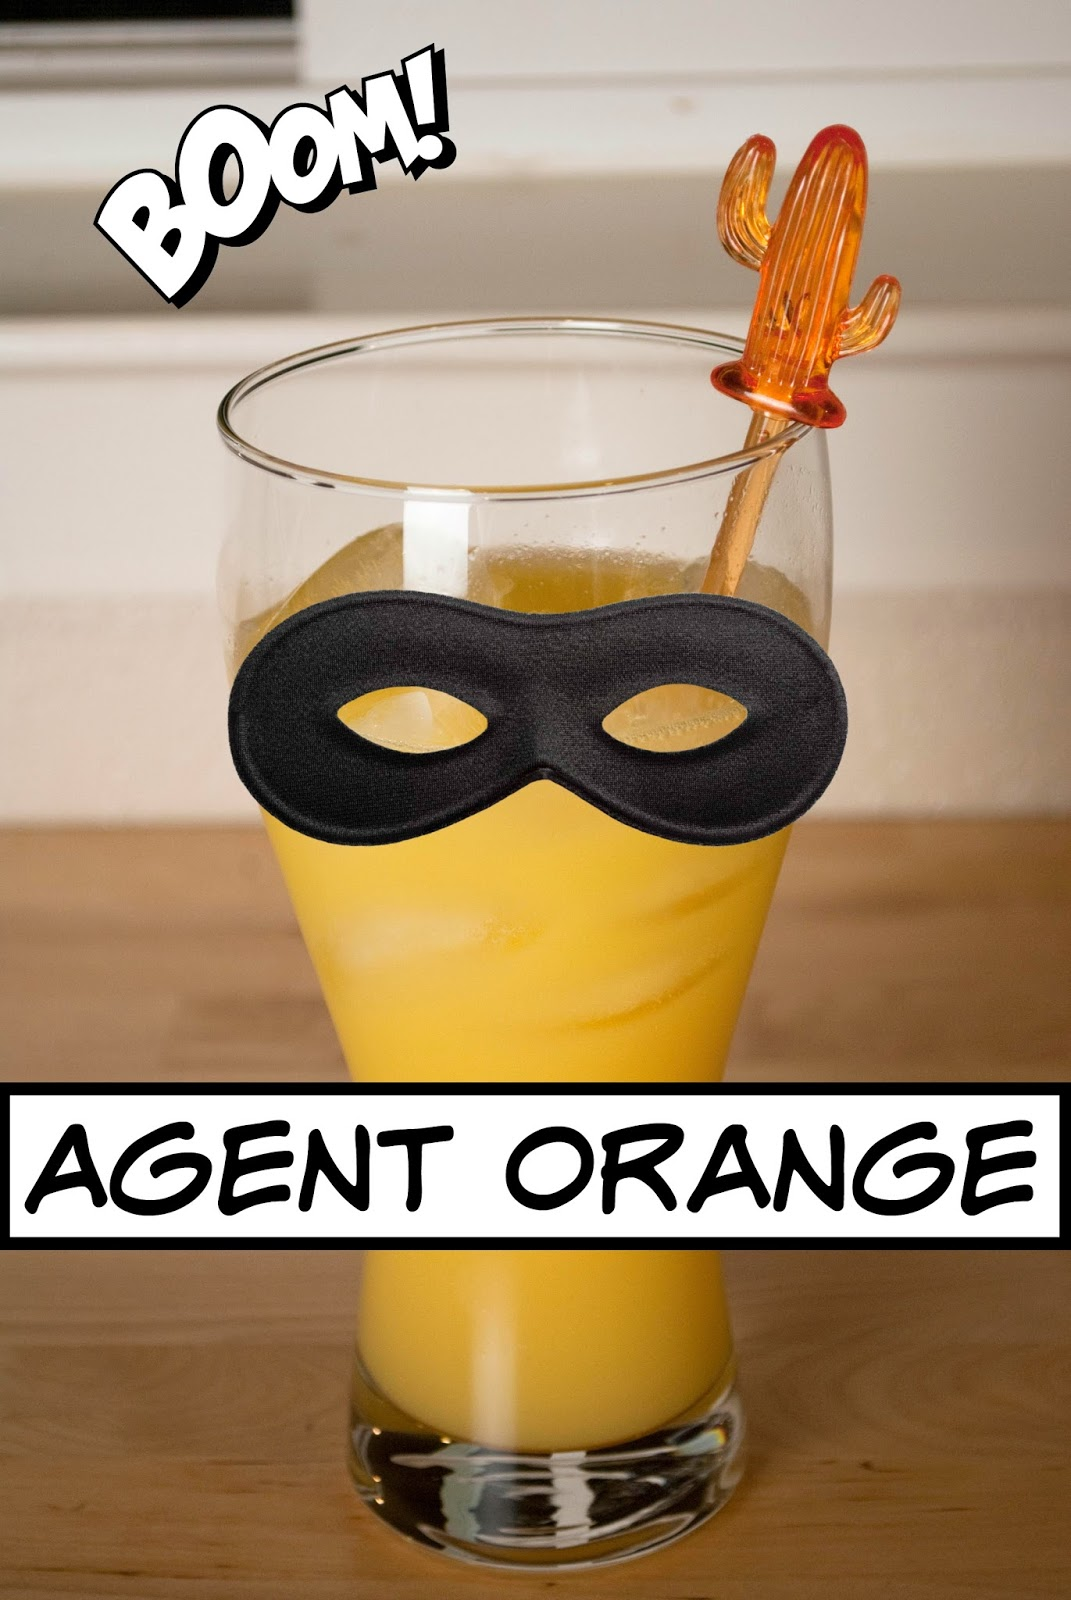 agent orange Agent orange summer tour continues tonight at the lookout lounge in omaha, with our pals fea 7/27 - globe hall - denver, co 7/28 - moxi theater - greely, co.